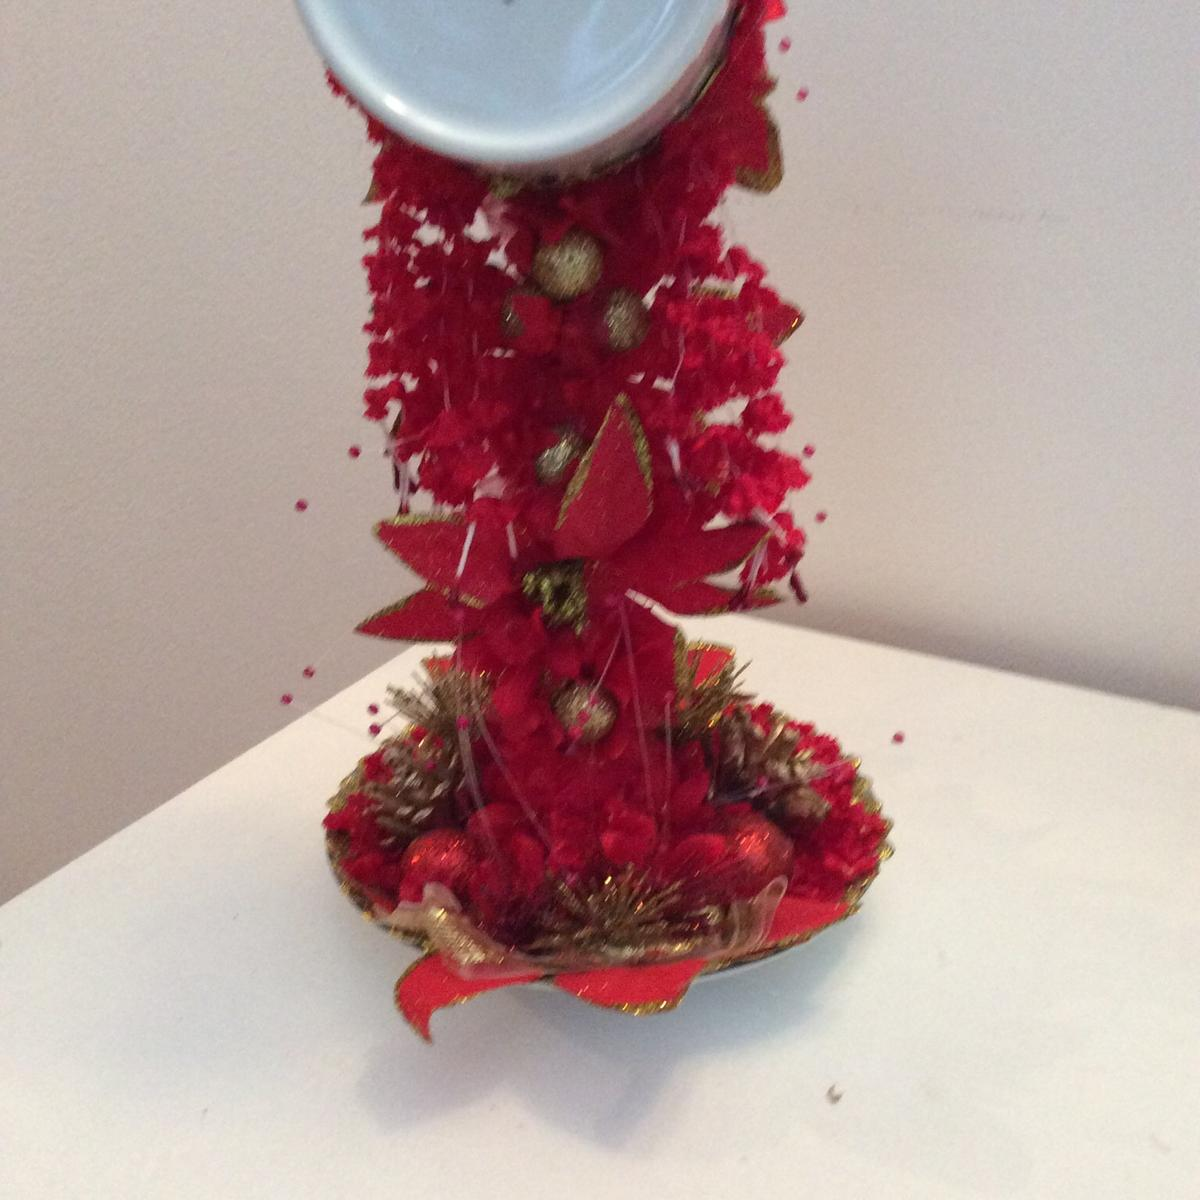 Christmas Floating Tea Cups.Floating Tea Cup Christmas Decoration In Chelmsford For